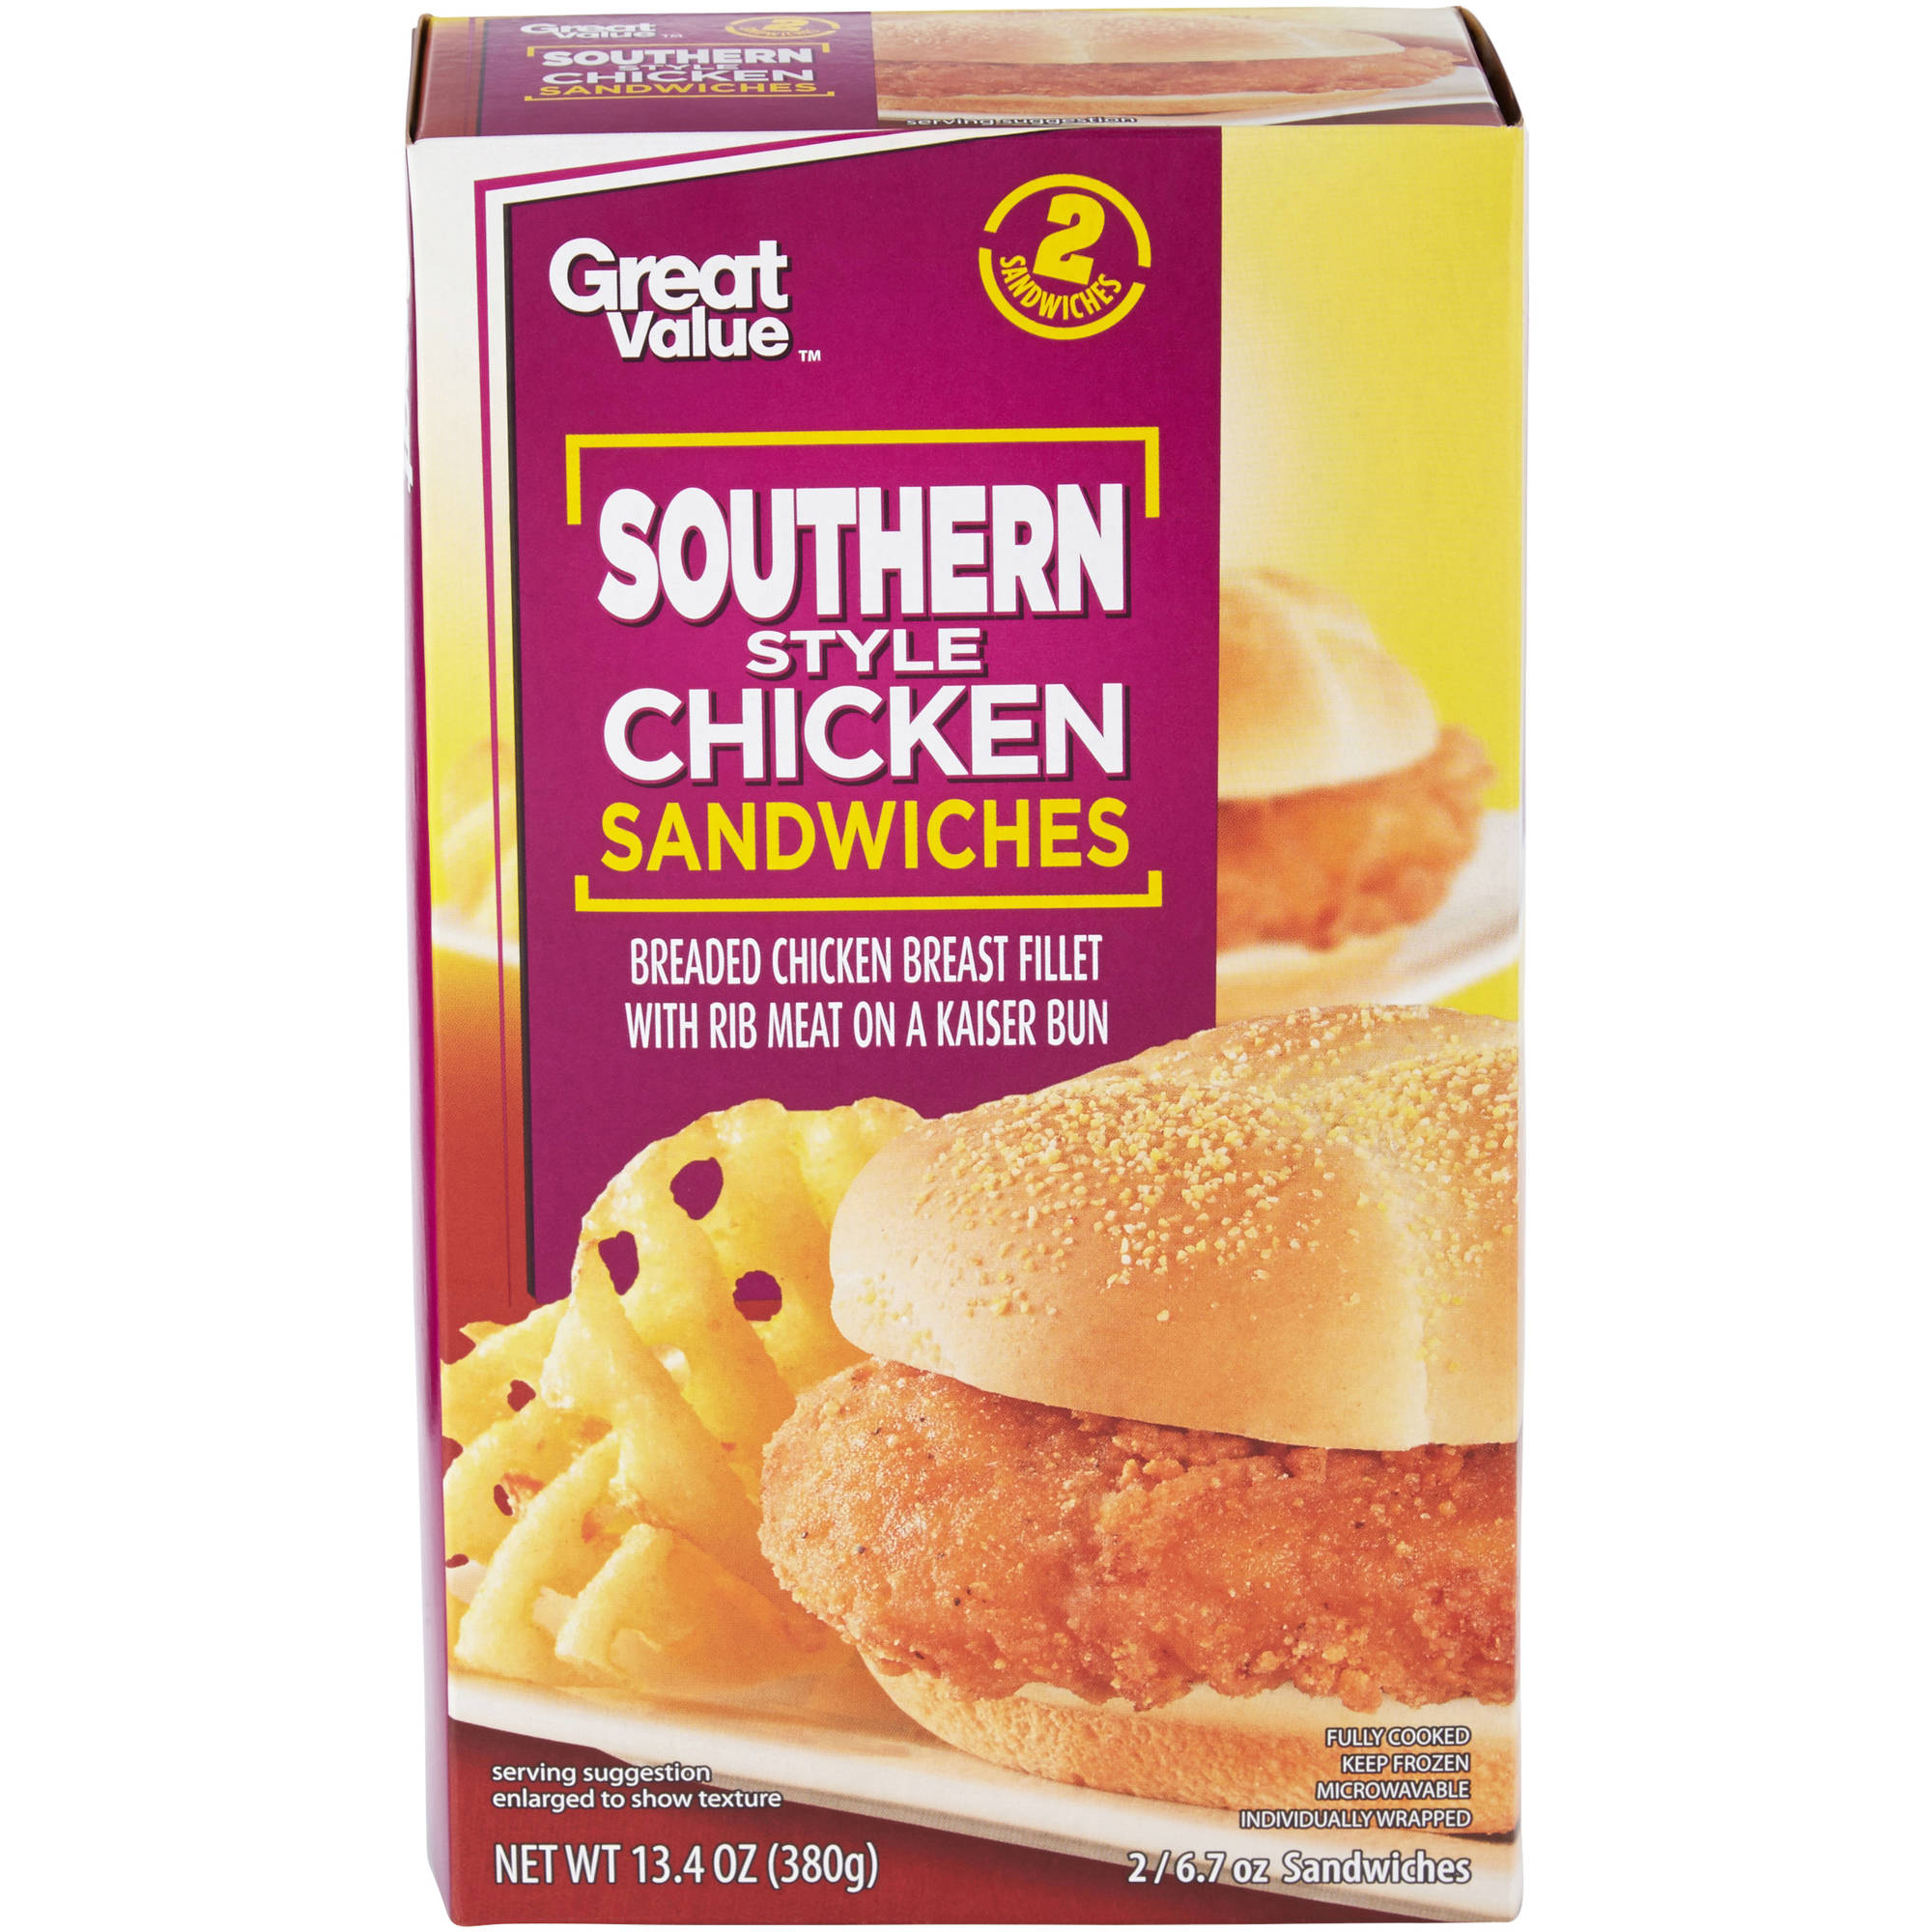 Great Value Southern Style Chicken Sandwiches, 2ct